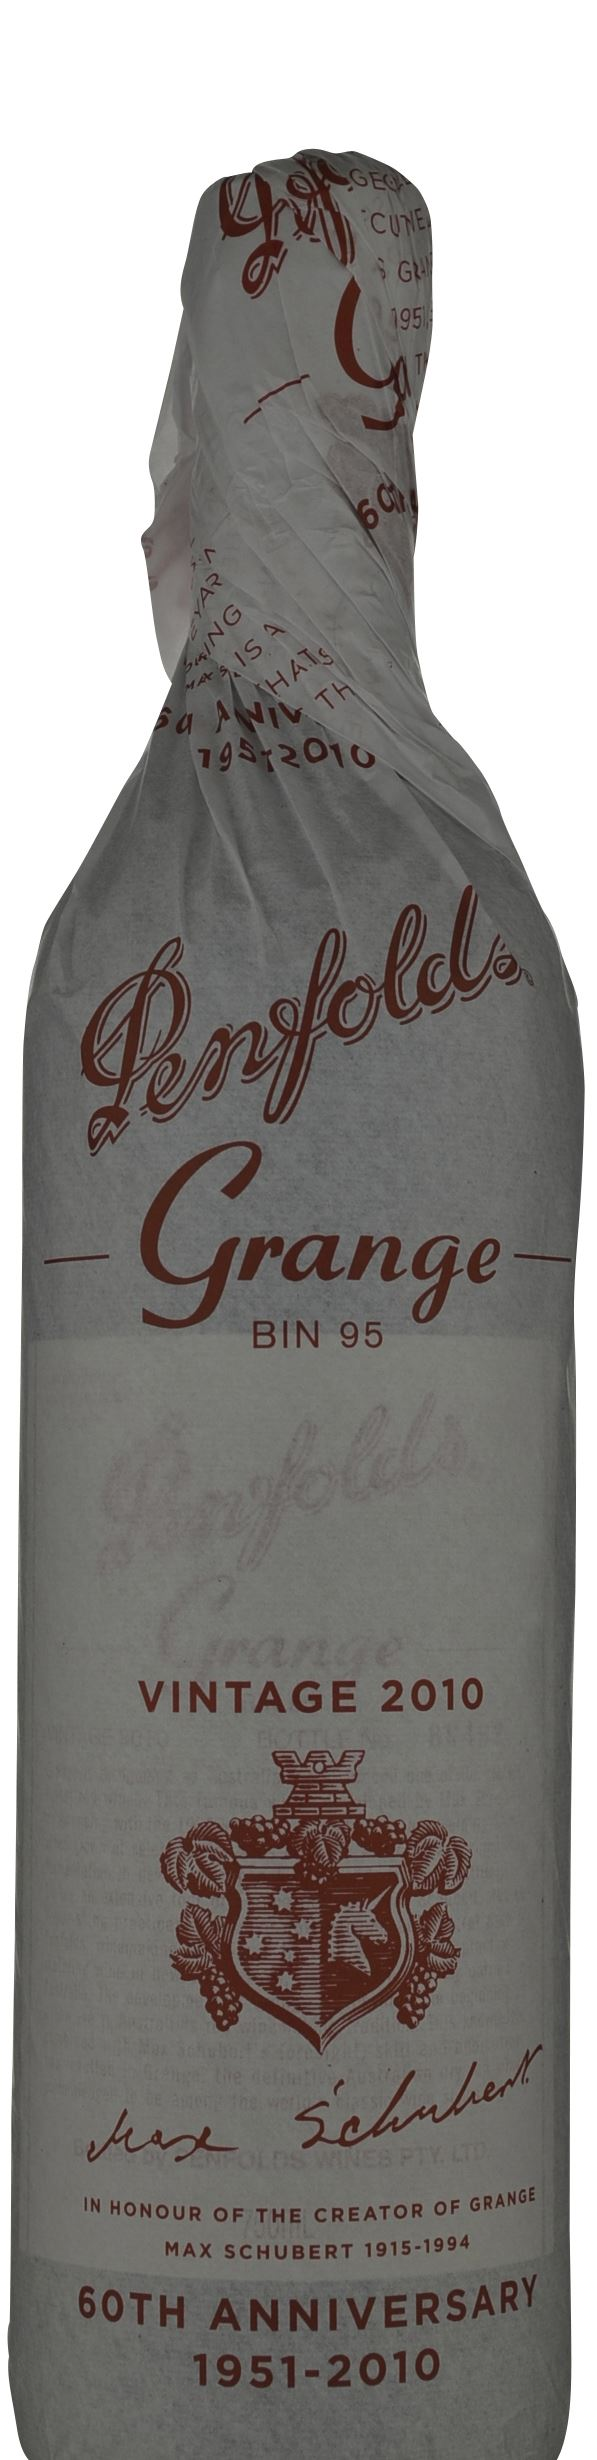 Penfolds Grange 2010 with 60th Anniversary Wrapper